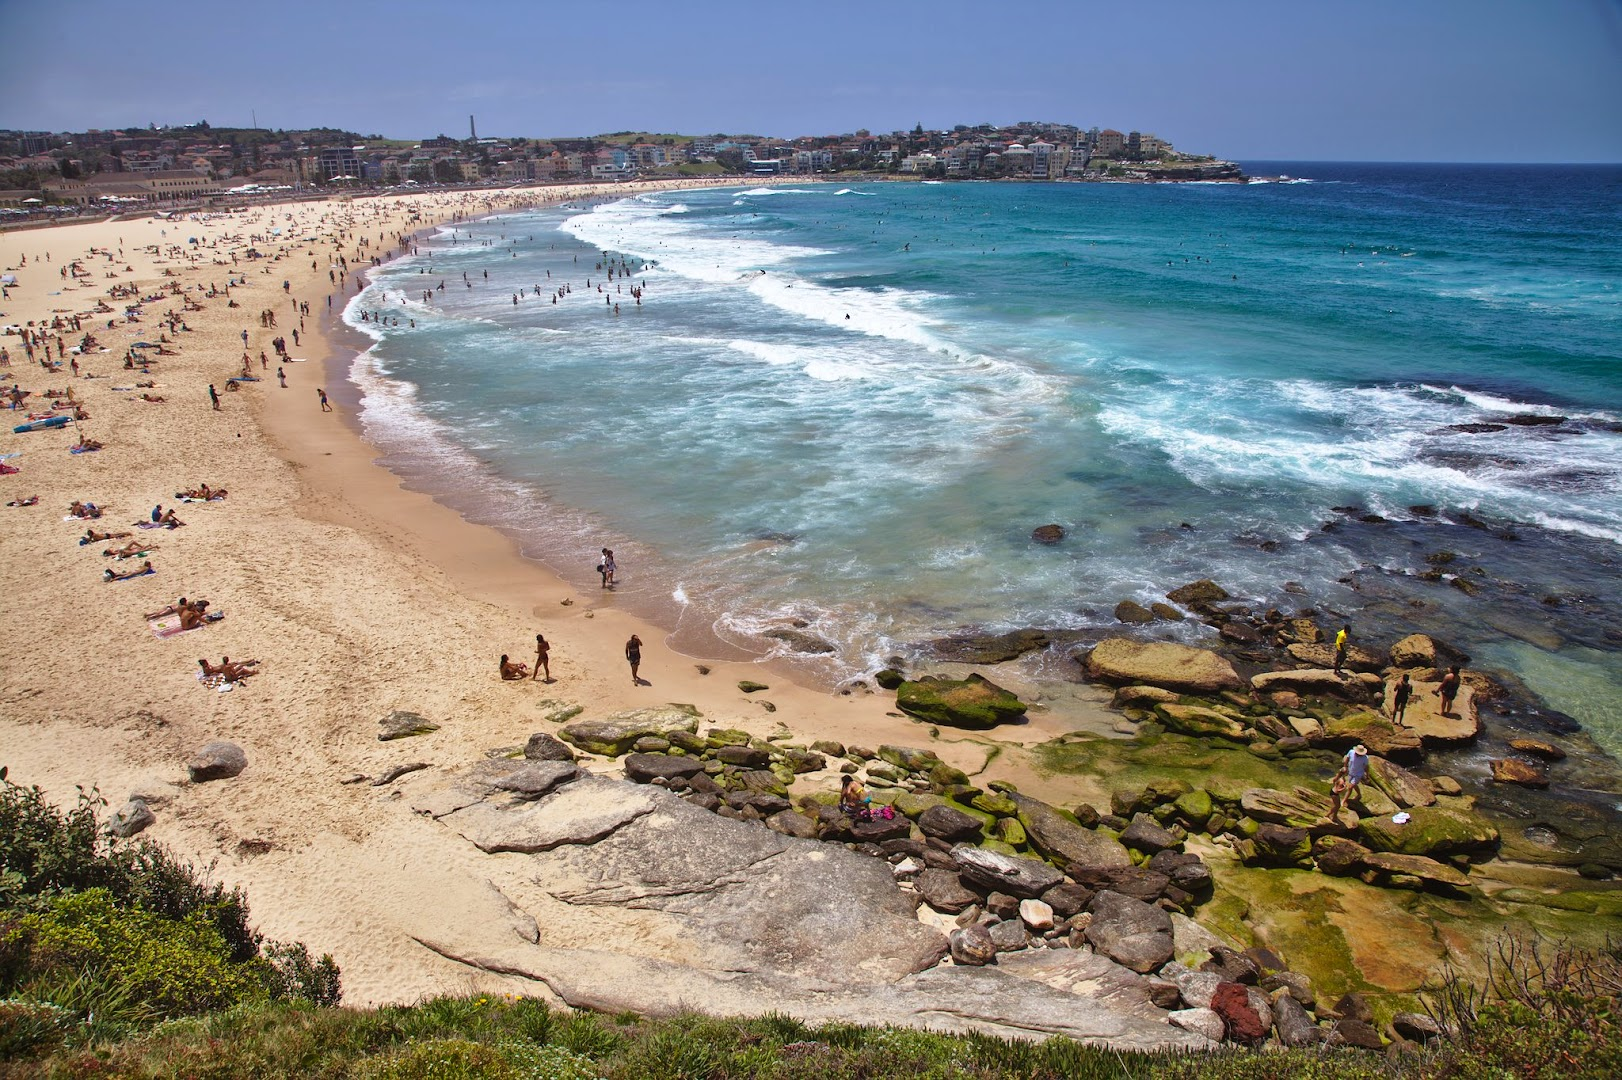 The famous Bondi beach